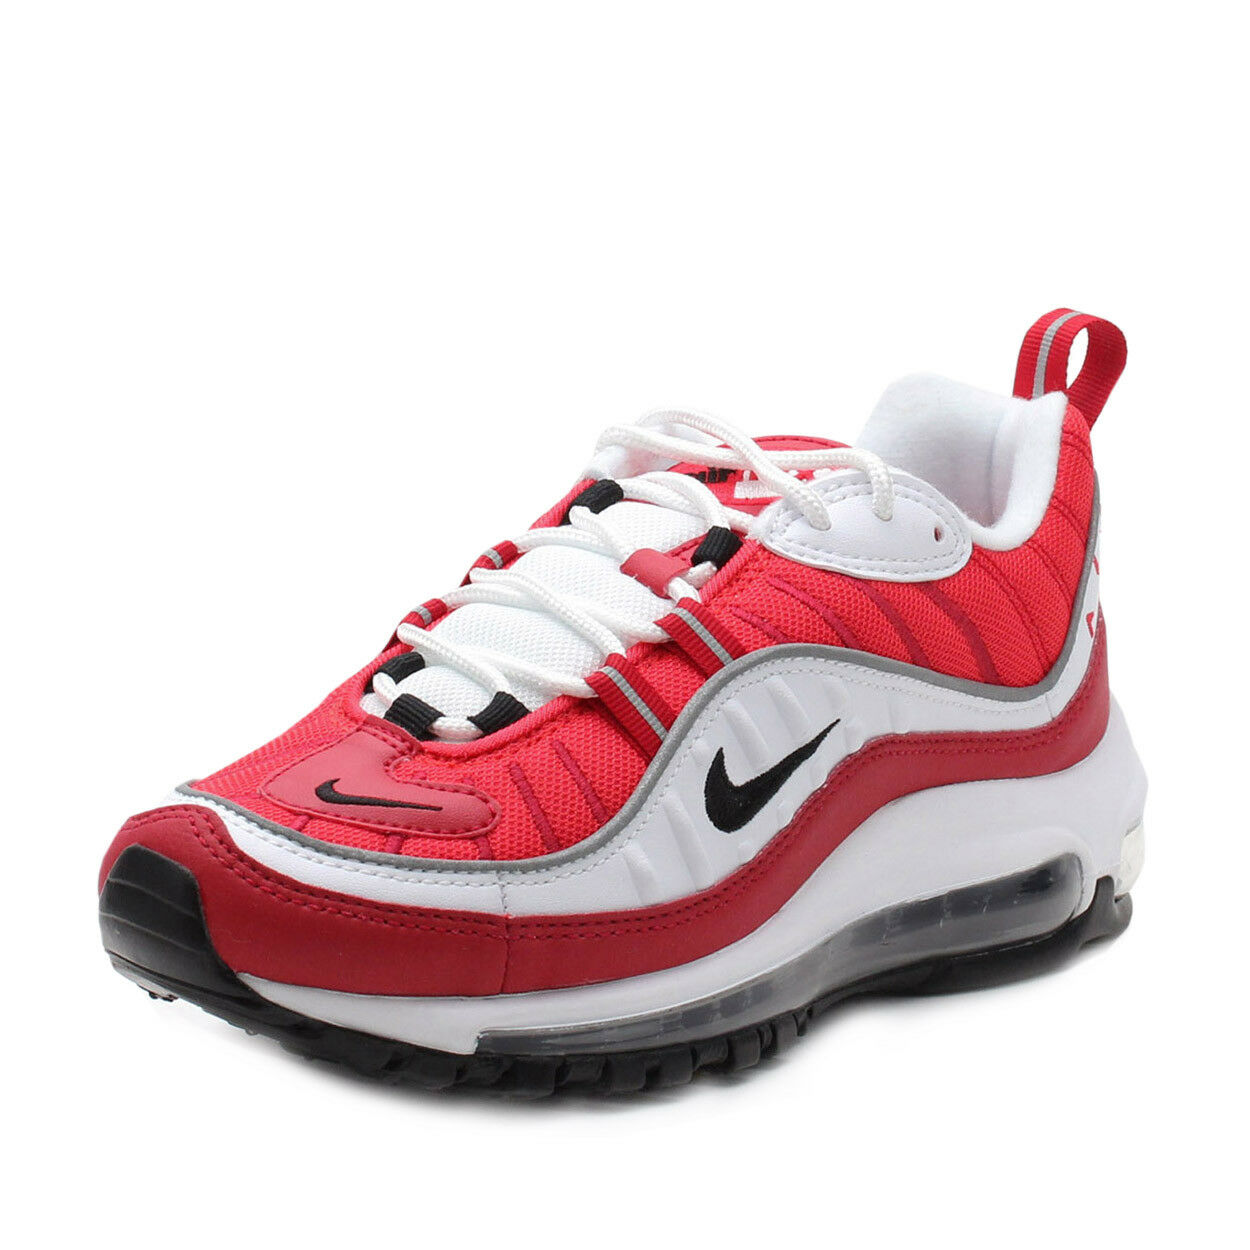 Nike Womens W Air Max 98 White/Black-Red Comfortable